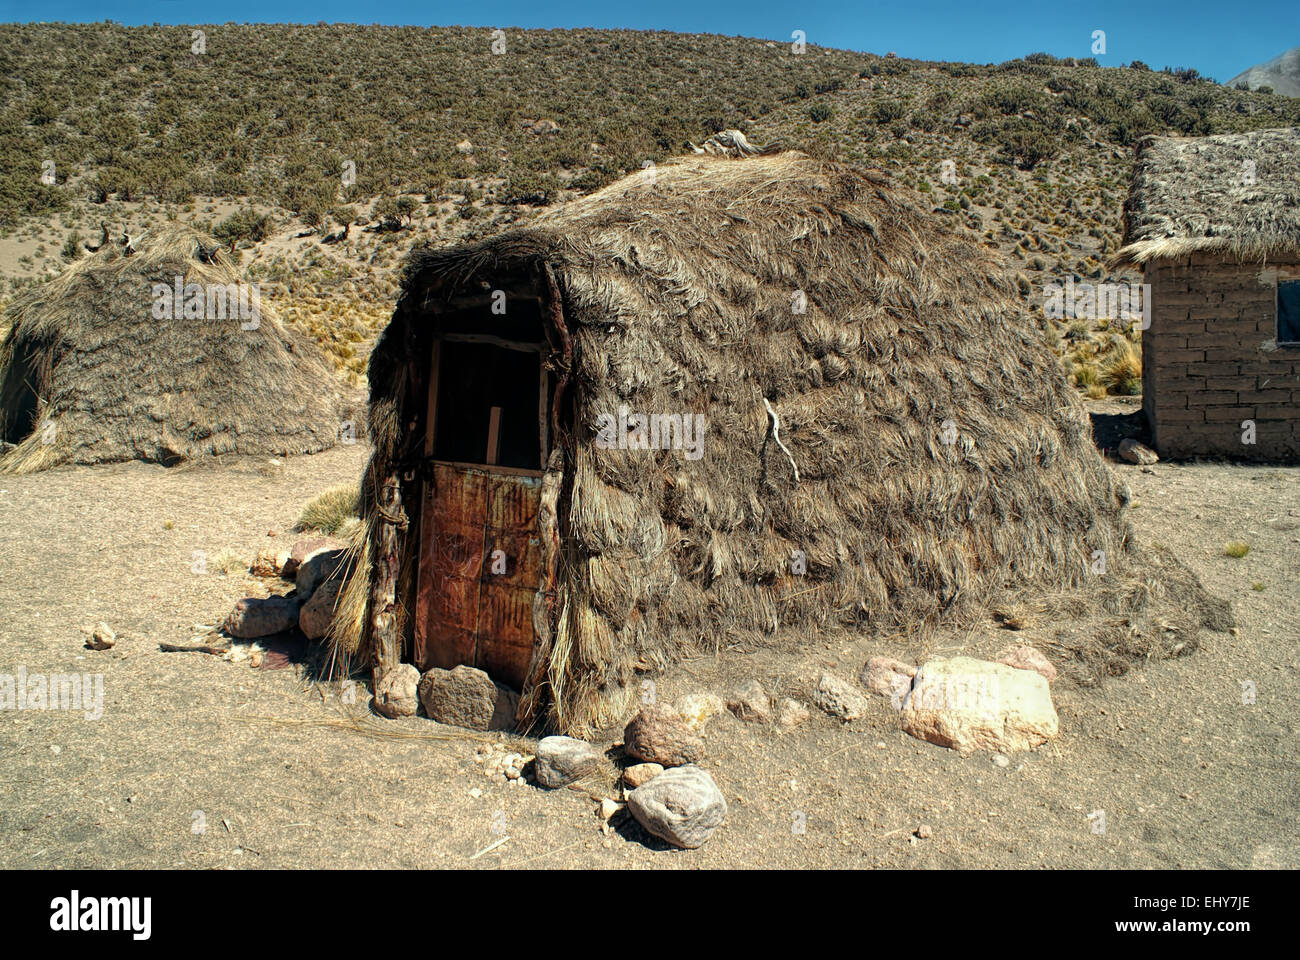 Traditional hut of indigenous people in Sajama national park - Stock Image